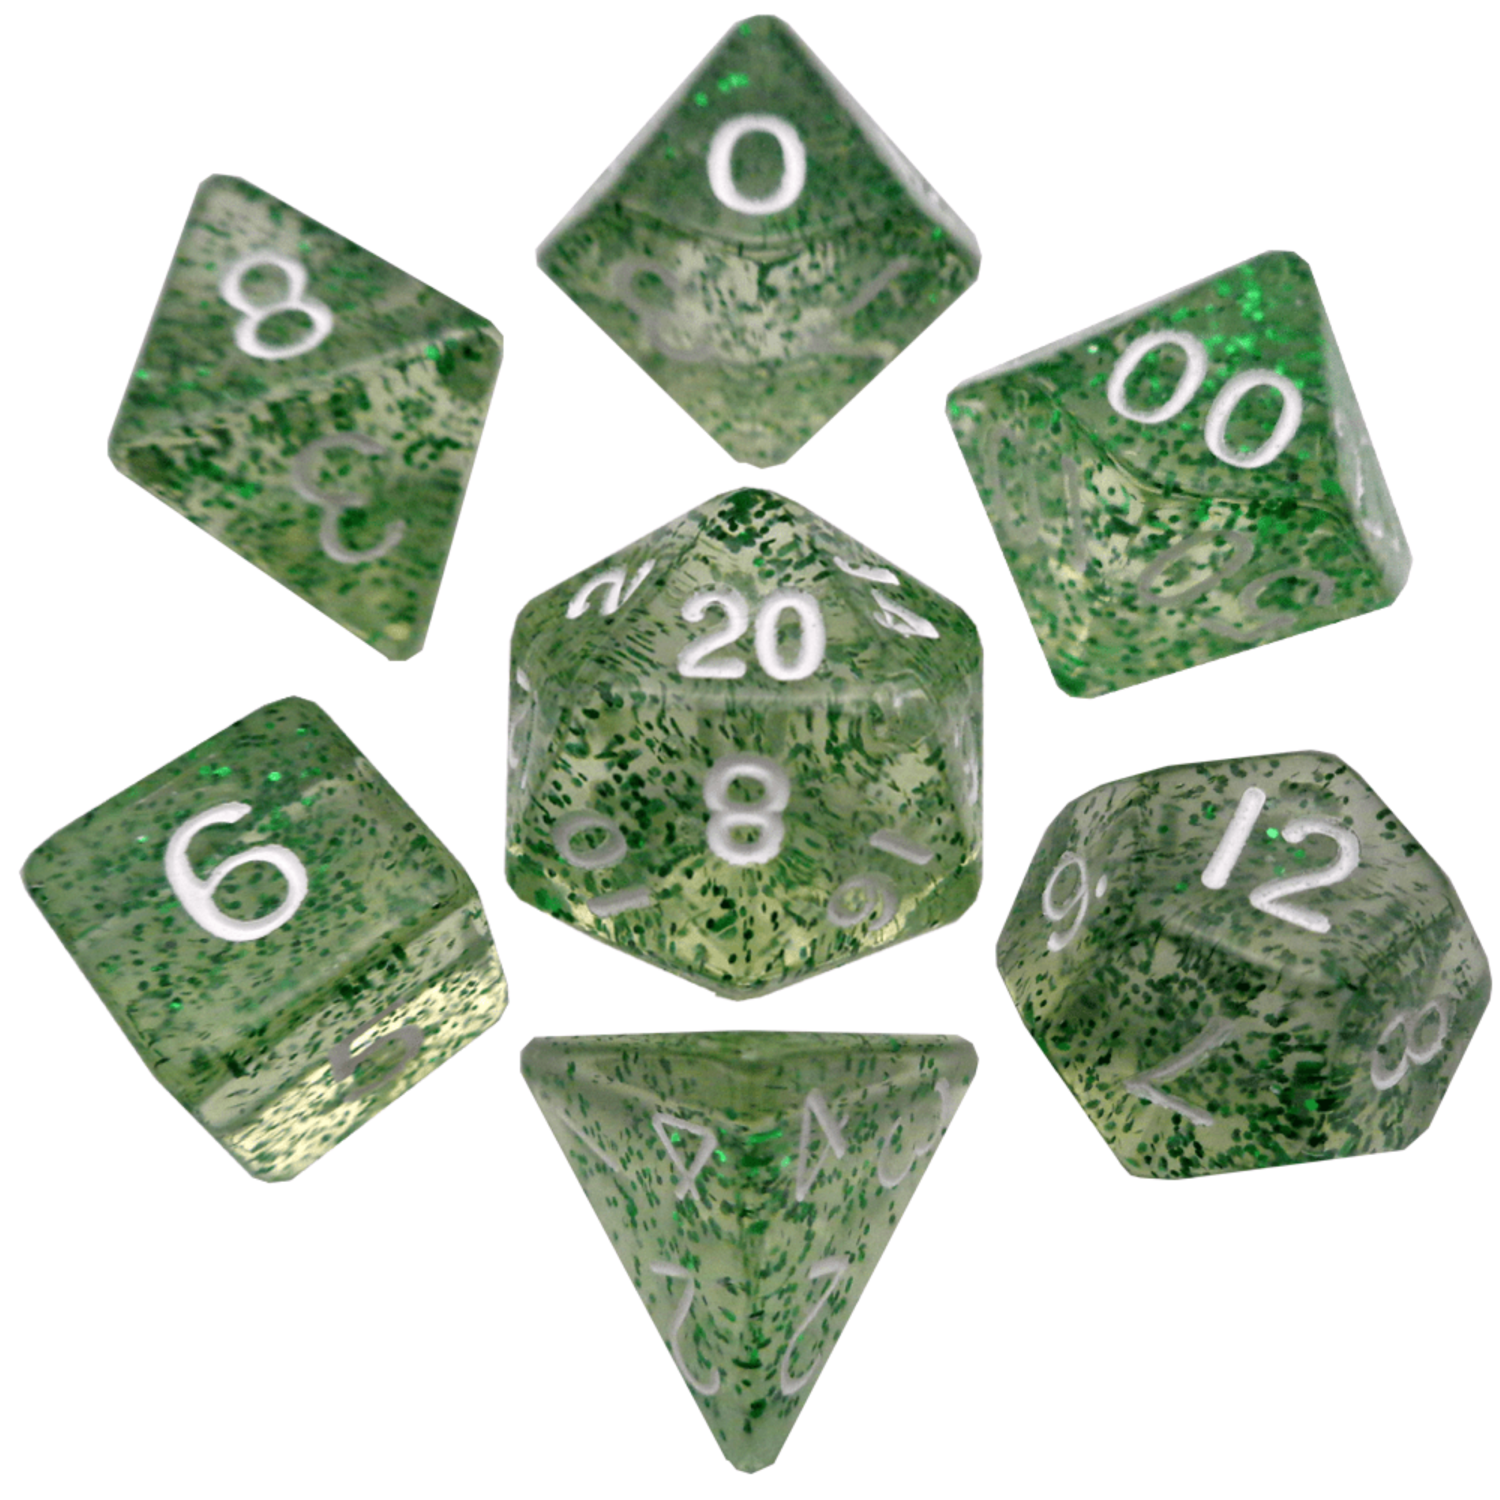 Ethereal Green 16mm Polyhedral Dice Set